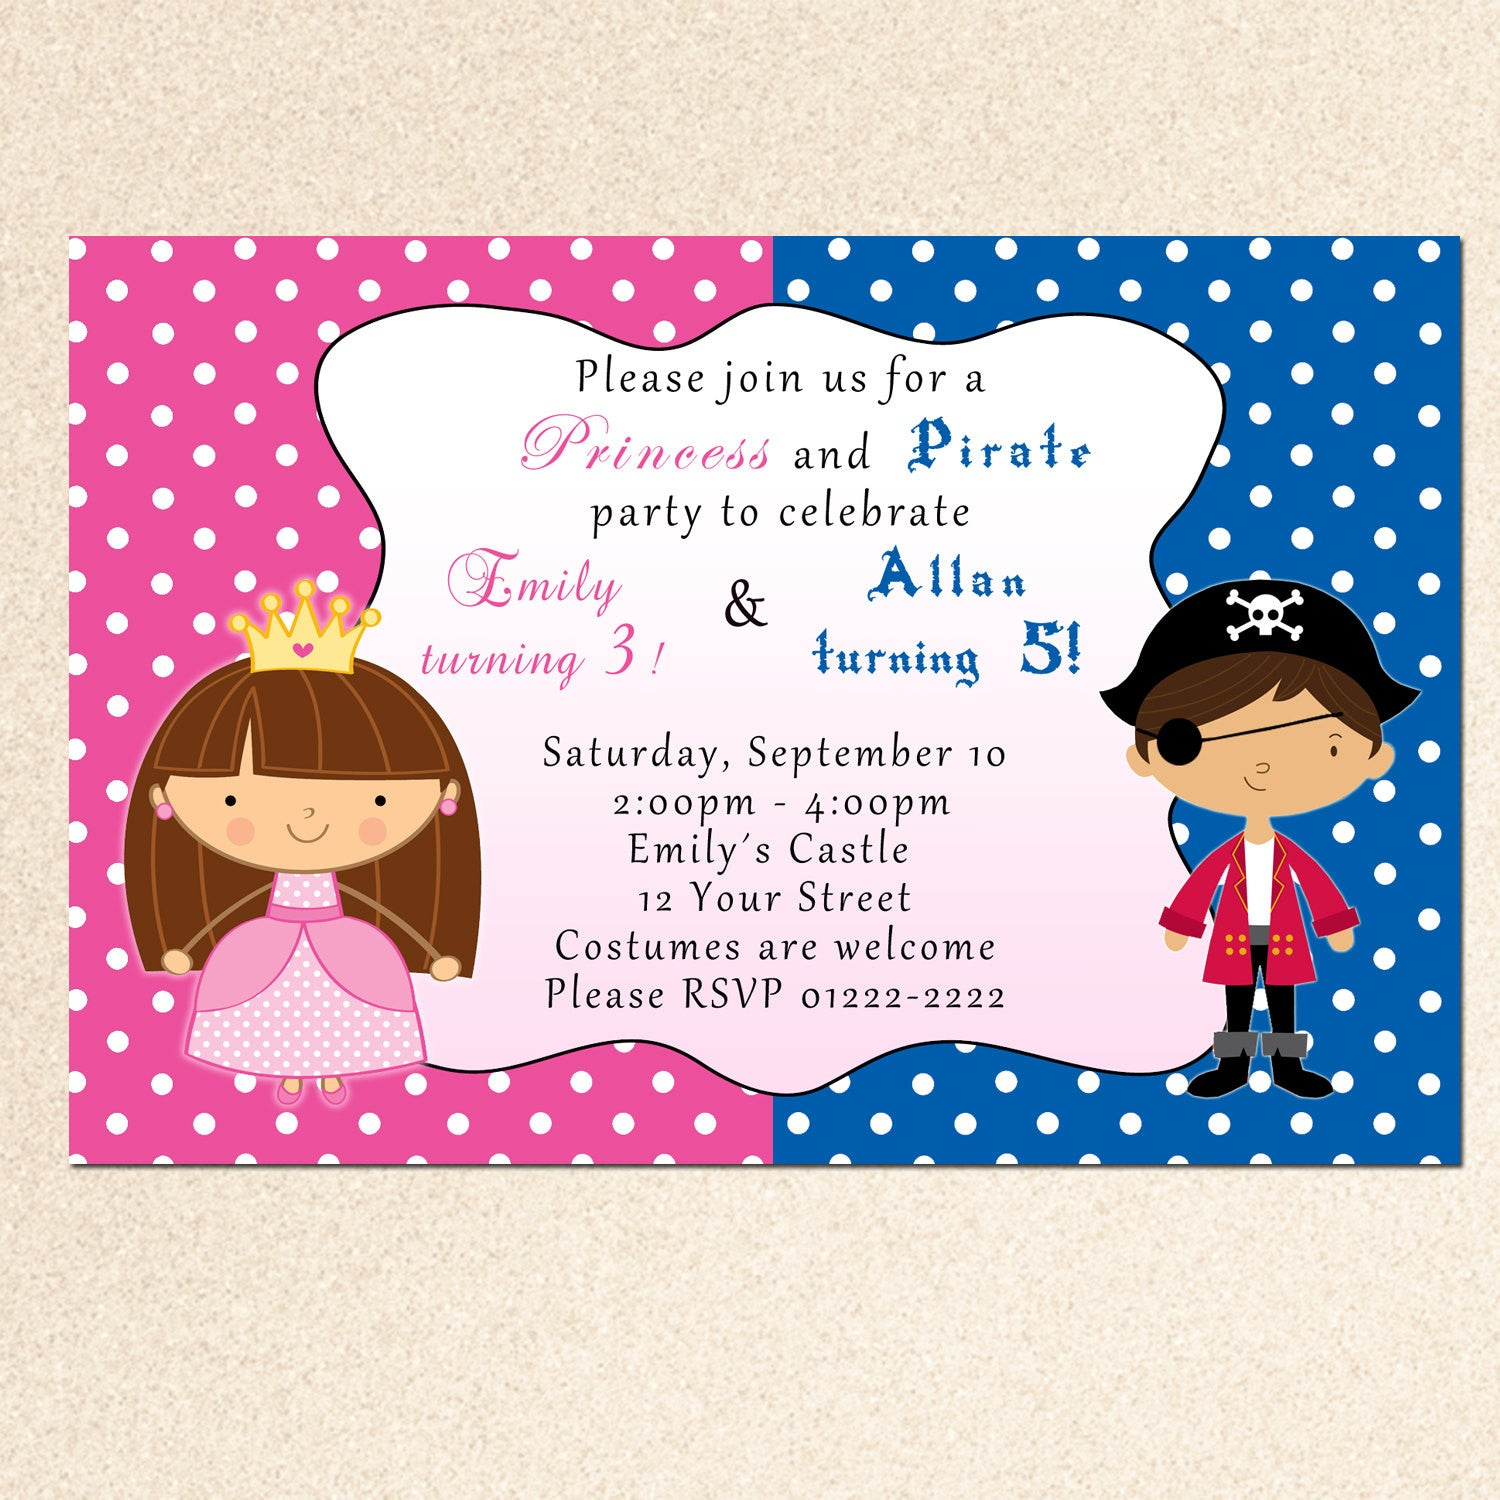 Princess Pirate Kids Birthday Party Invitation – Pink The Cat